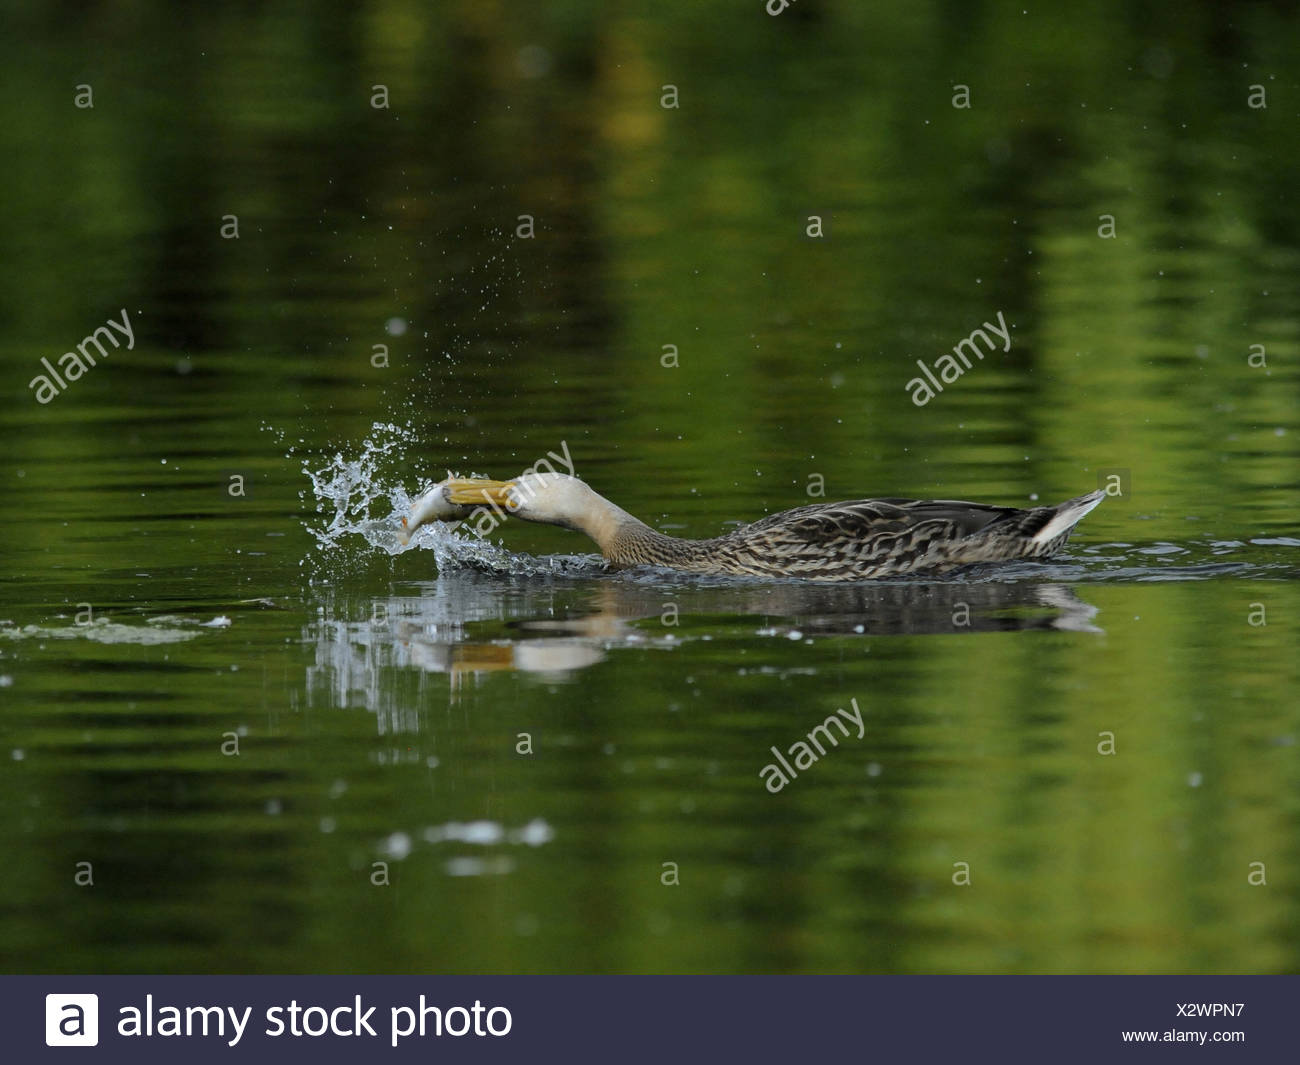 A lucky catch, a duck catching a fish. - Stock Image